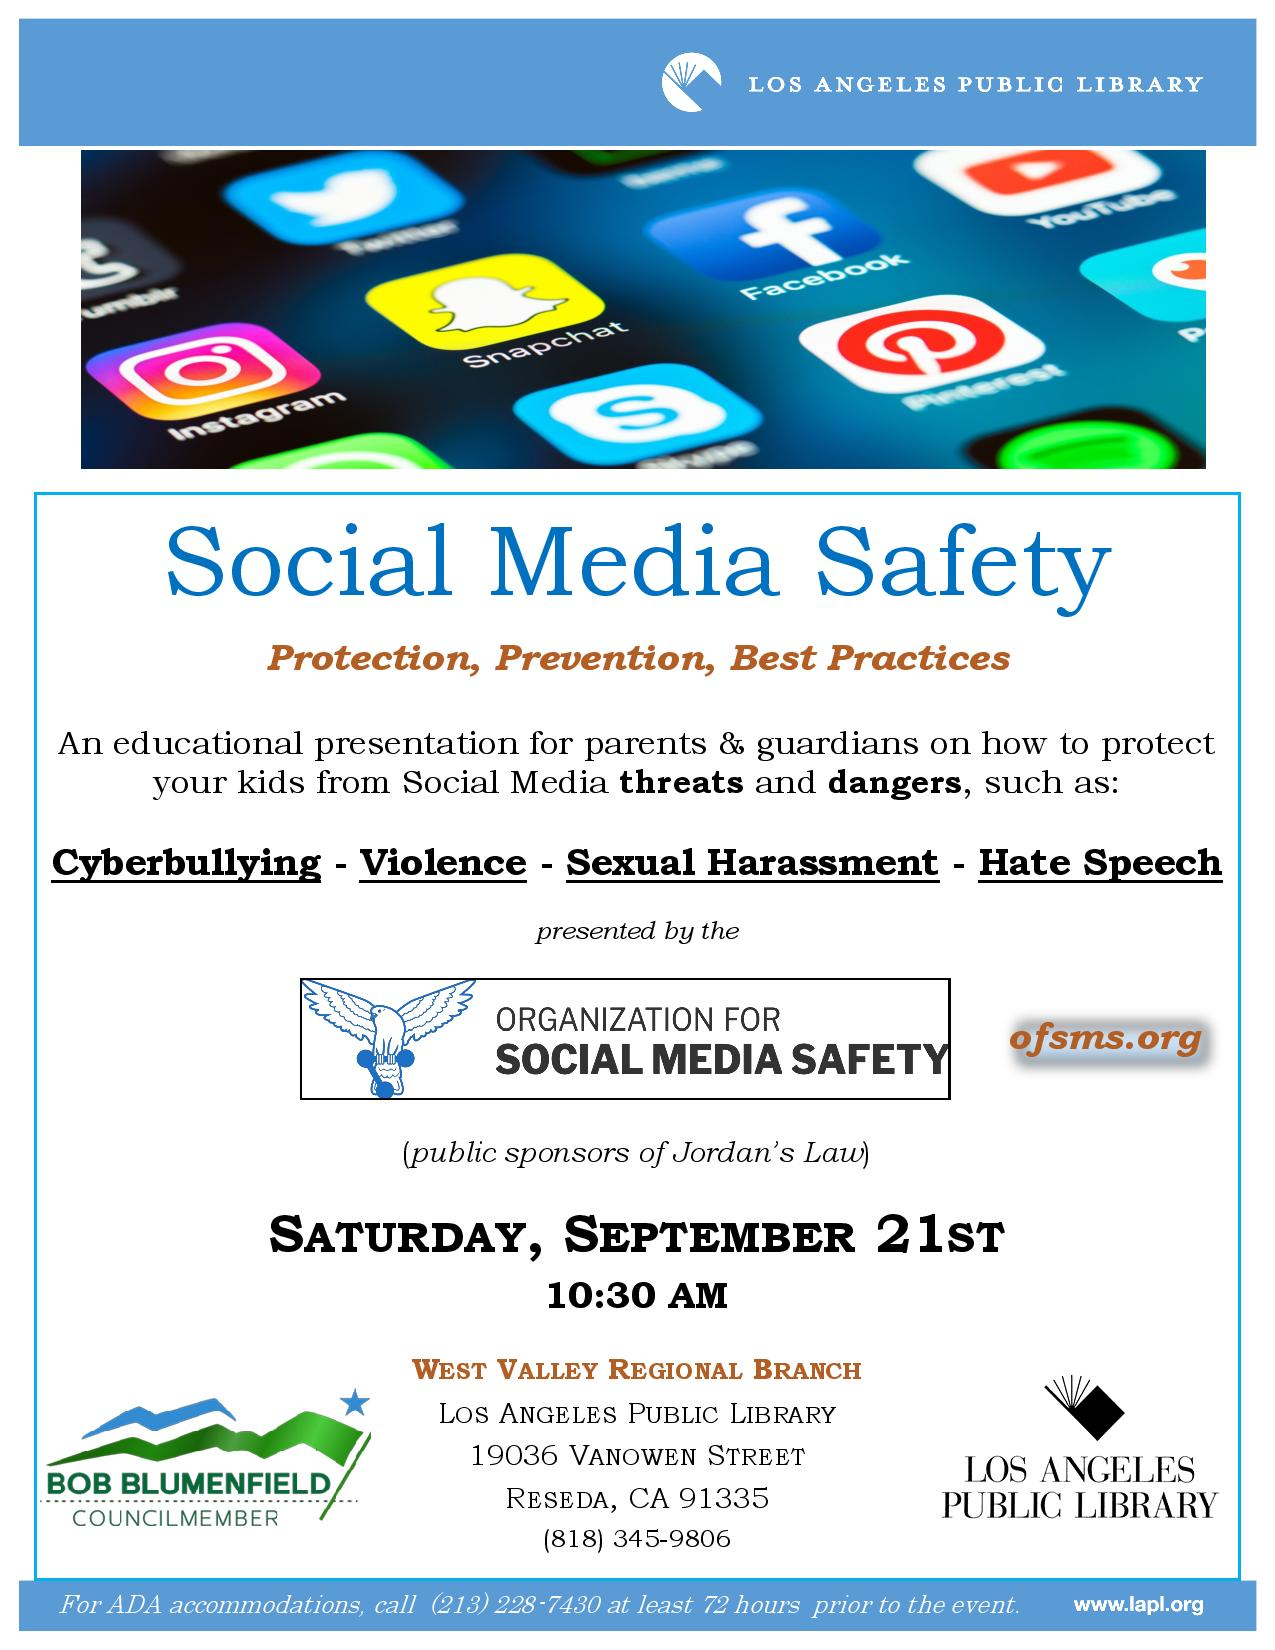 2019-09-21_Social_Media_Safety_West-Valley-Library-page-001.jpg